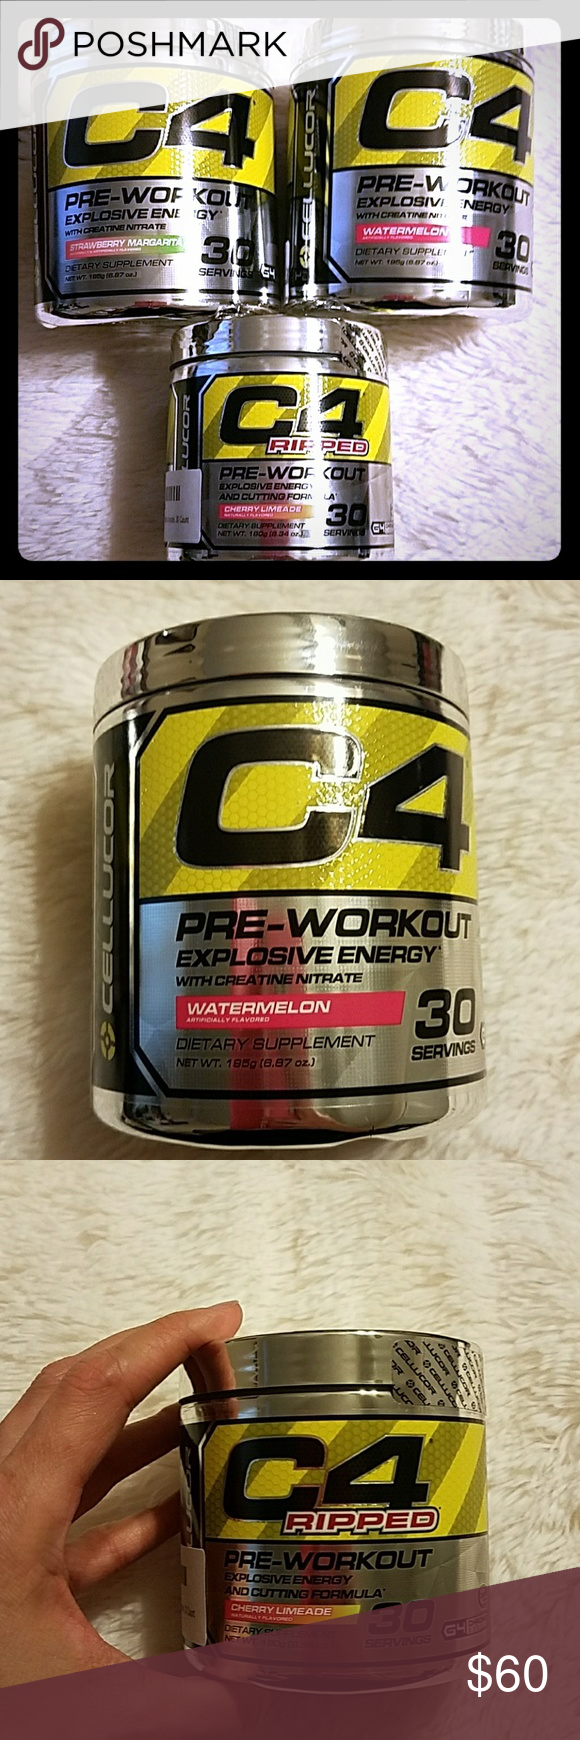 C4 Pre Workout All Expire 12 17 Unopened Canisters Of C4 Pre Workout Expires 12 17 C4 Other Ripped Workout Preworkout Workout